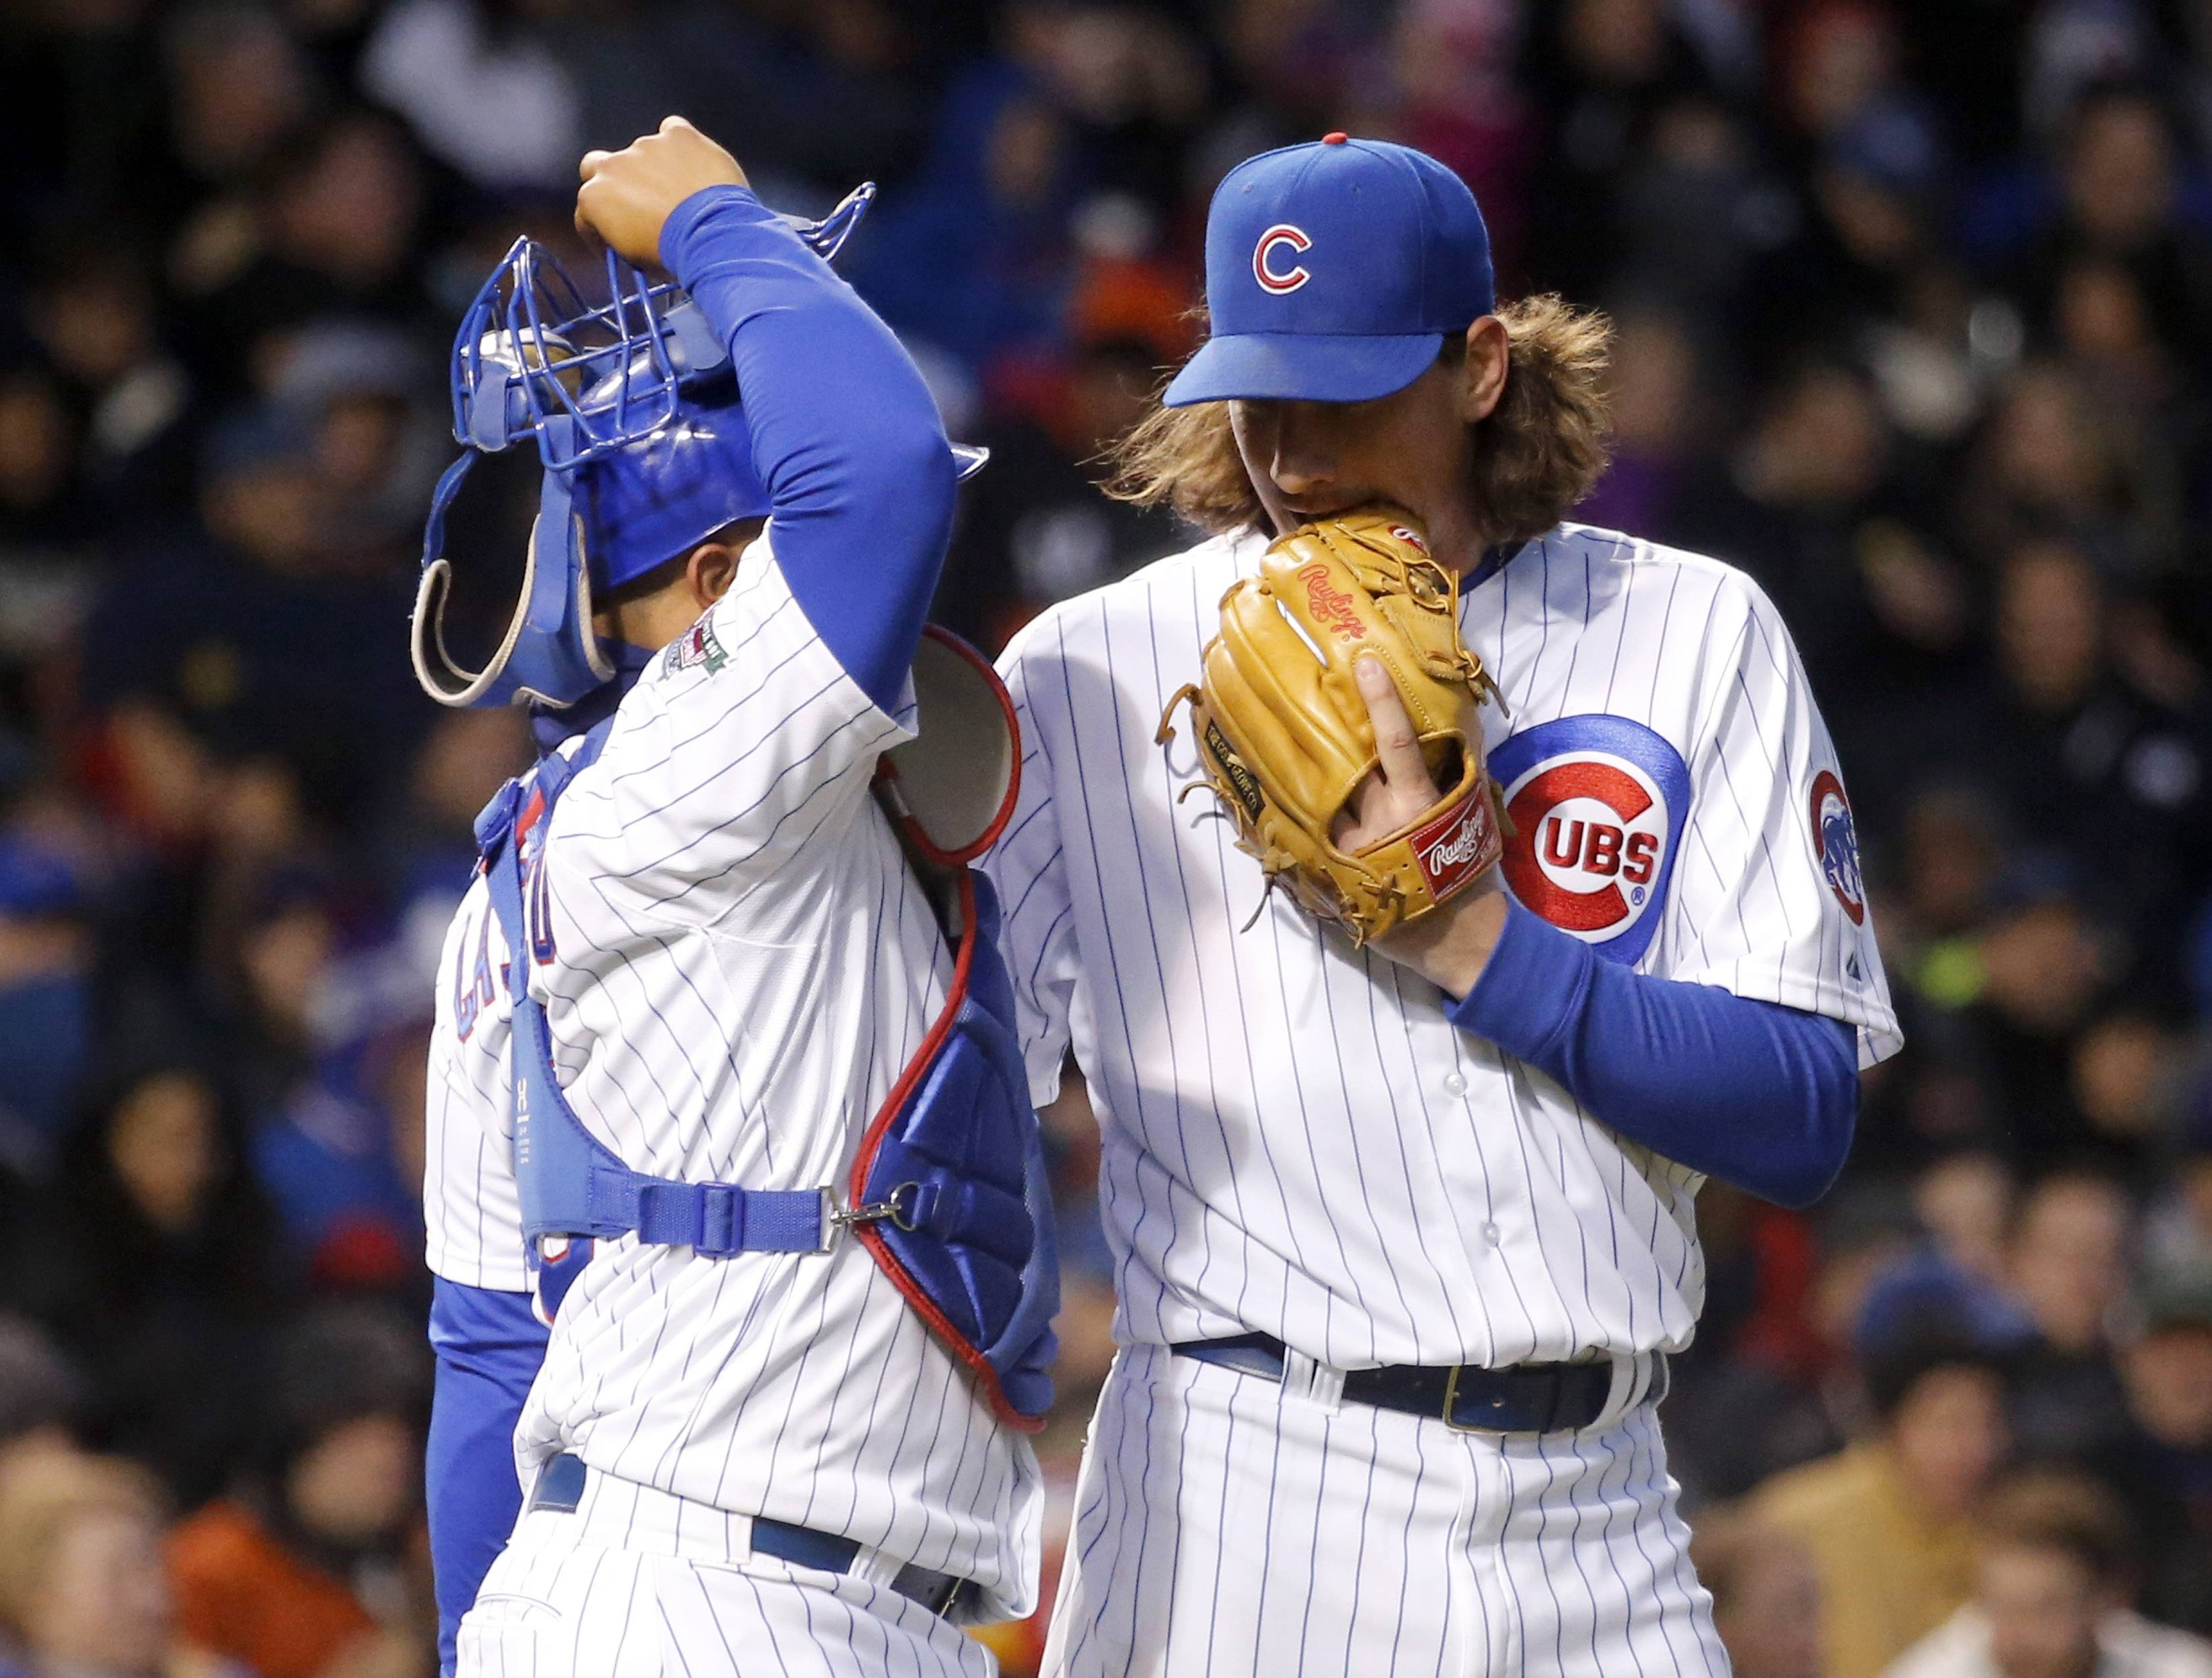 Chicago Cubs starting pitcher Jeff Samardzija, right, talks to catcher Welington Castillo during the fourth inning of an interleague baseball game against the Chicago White Sox Monday, May 5, 2014, in Chicago.